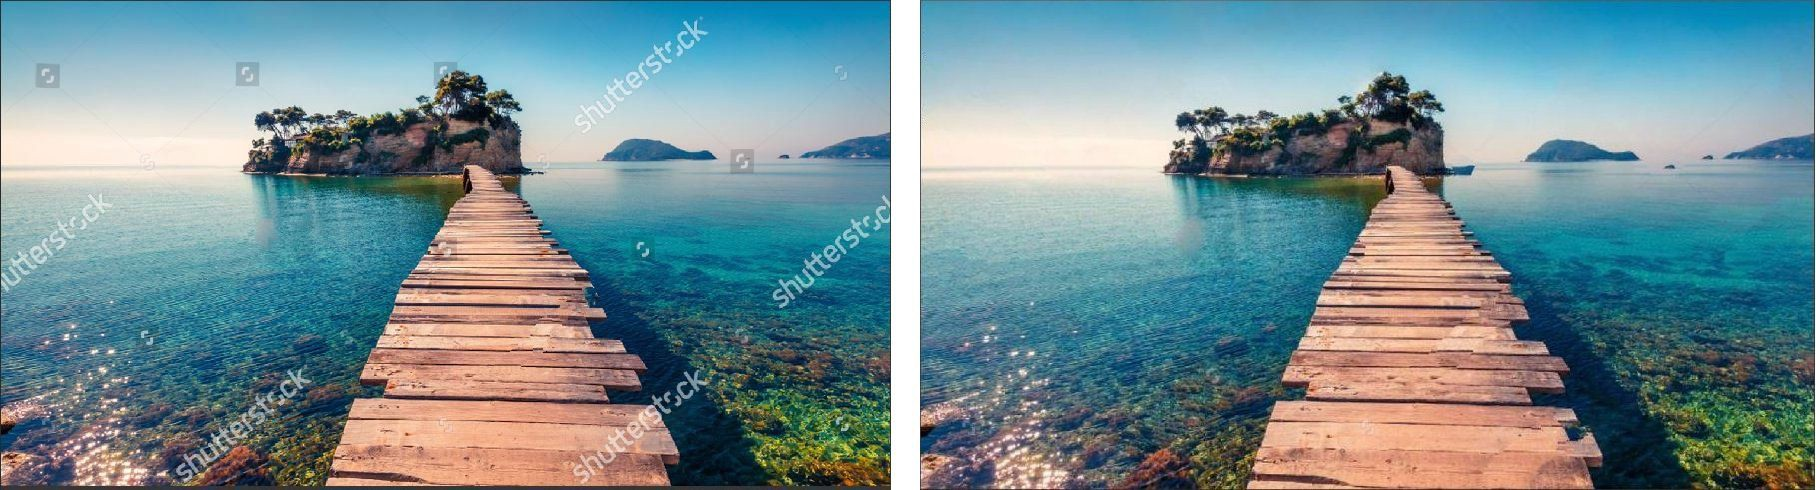 how to remove watermark